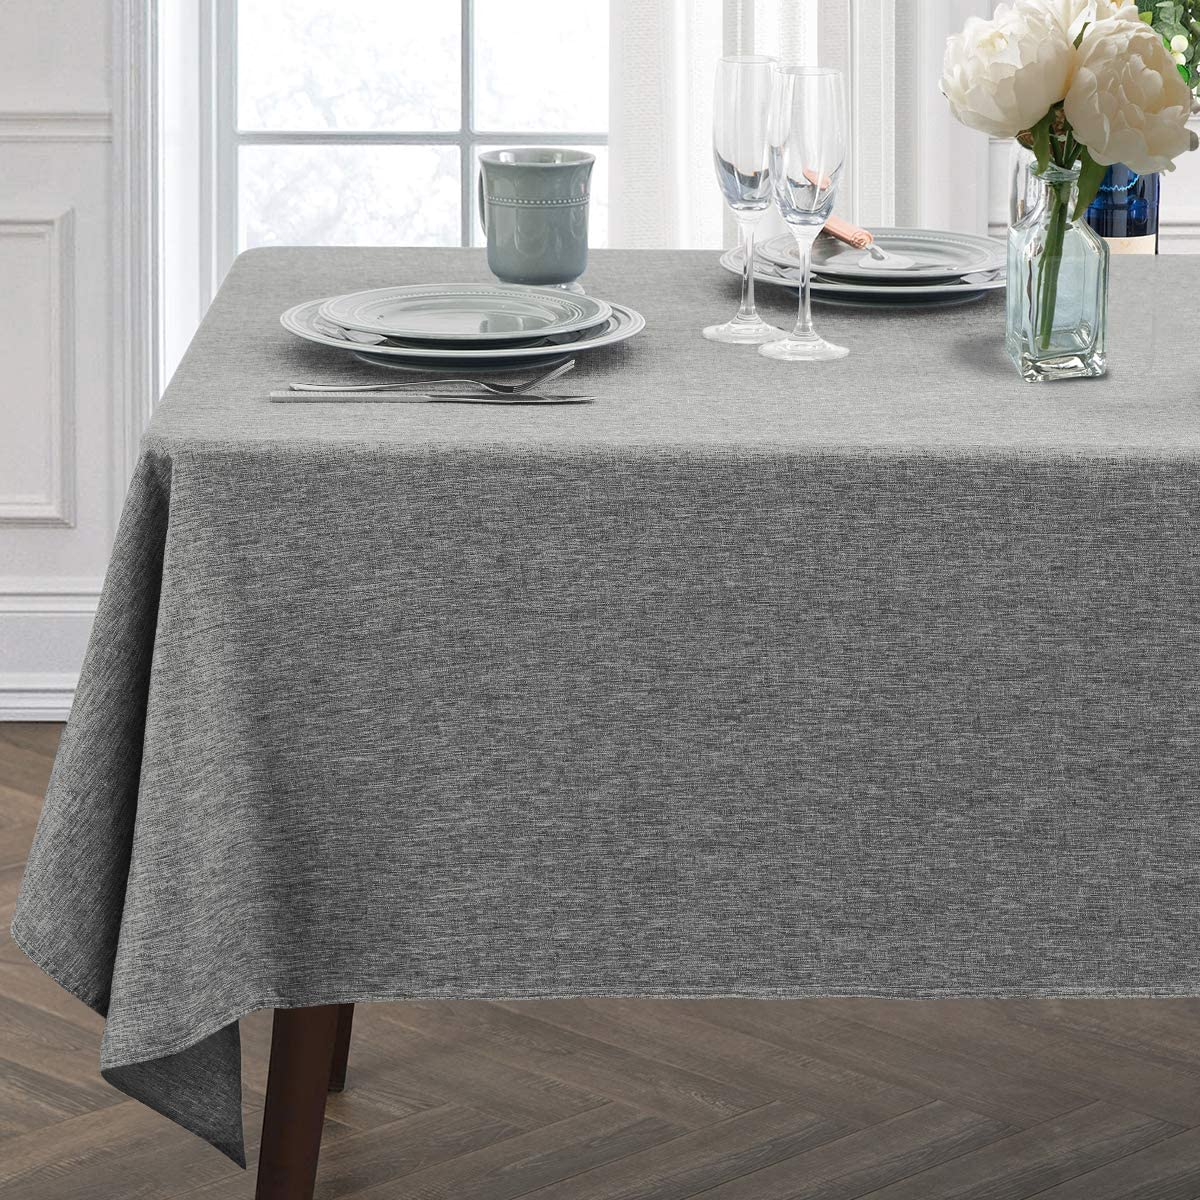 JUCFHY Rectangle Louisville-Jefferson County Mall Table Cloth Gorgeous Linen Heavy Farmhouse Tablecloth D